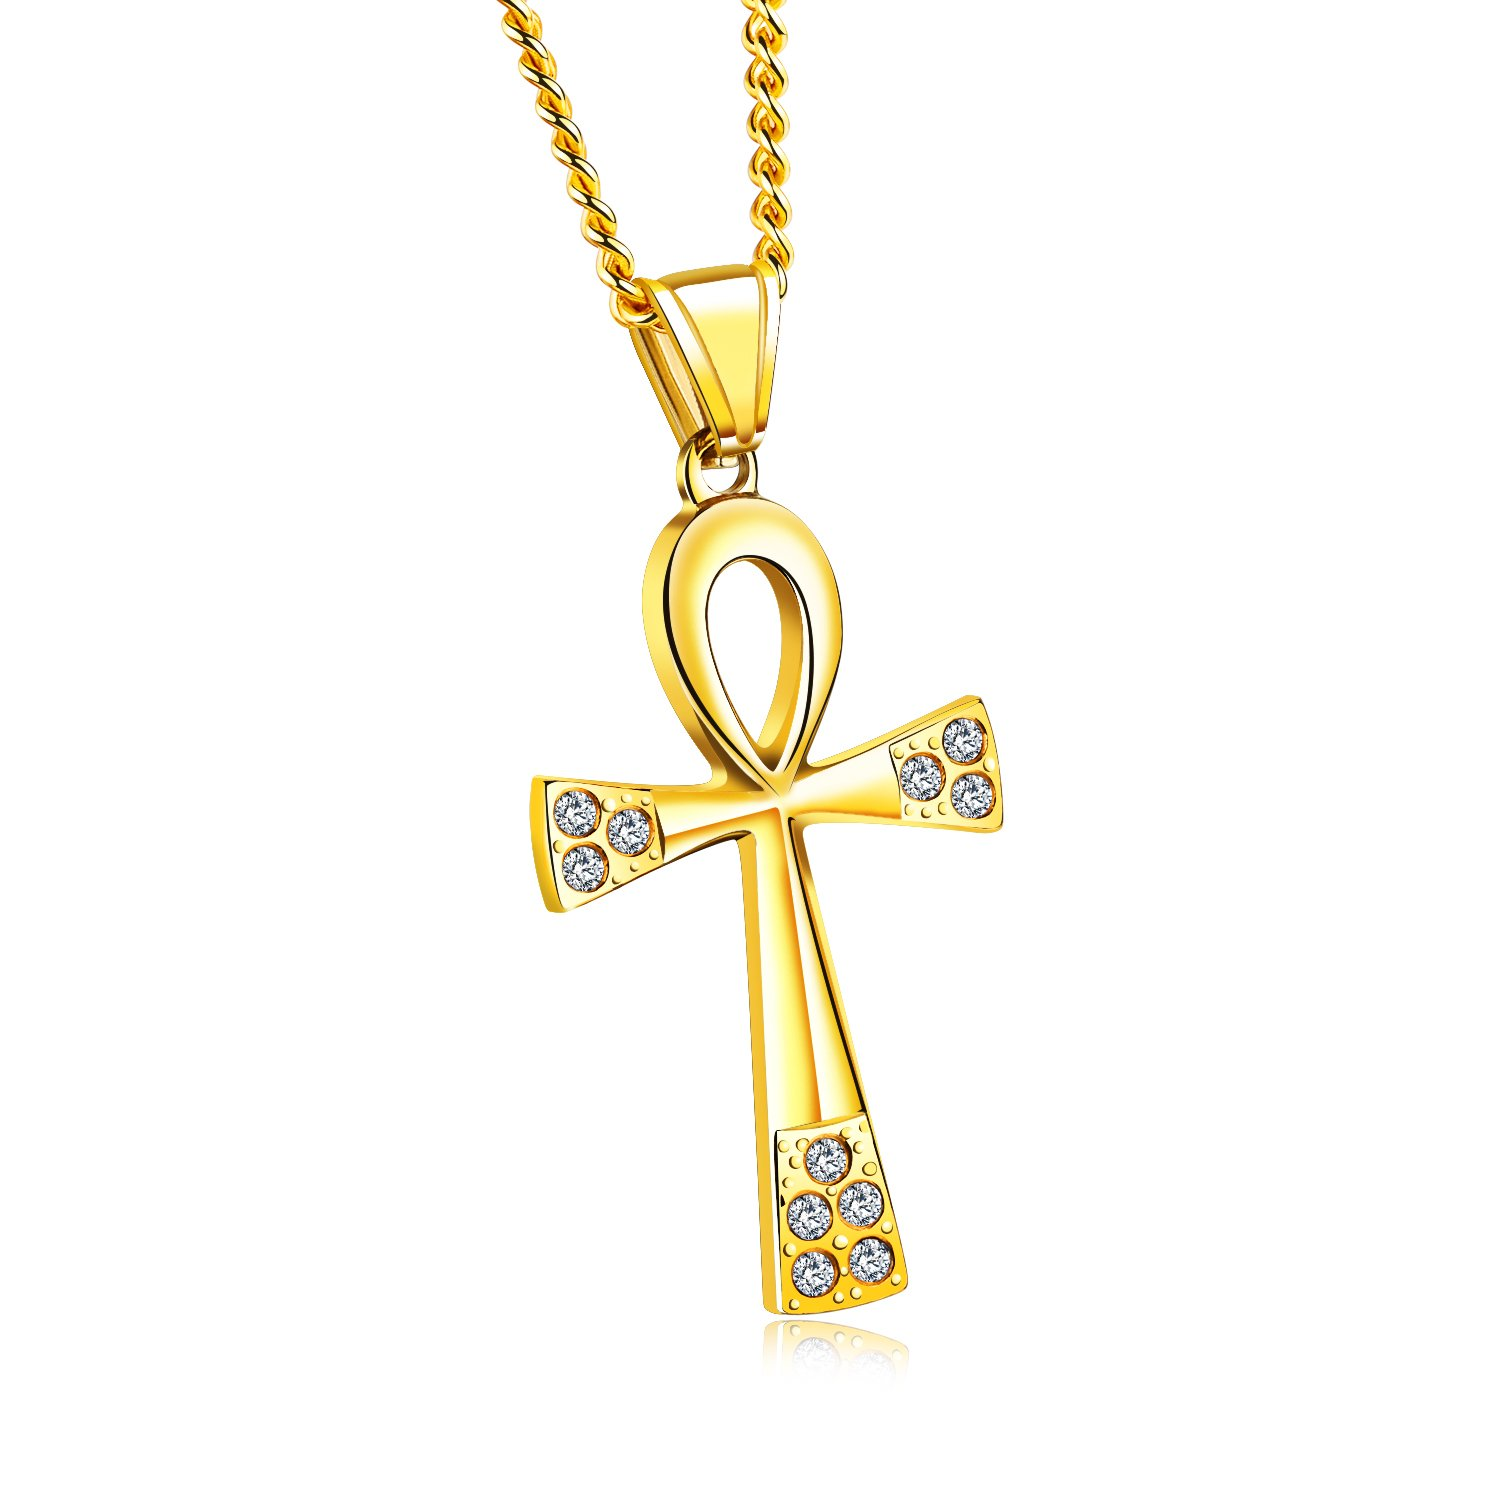 TENGYI Stainless Steel Key of the Nile Egyptian Ankh Cross Necklace for Men Women 24 Inch Chain